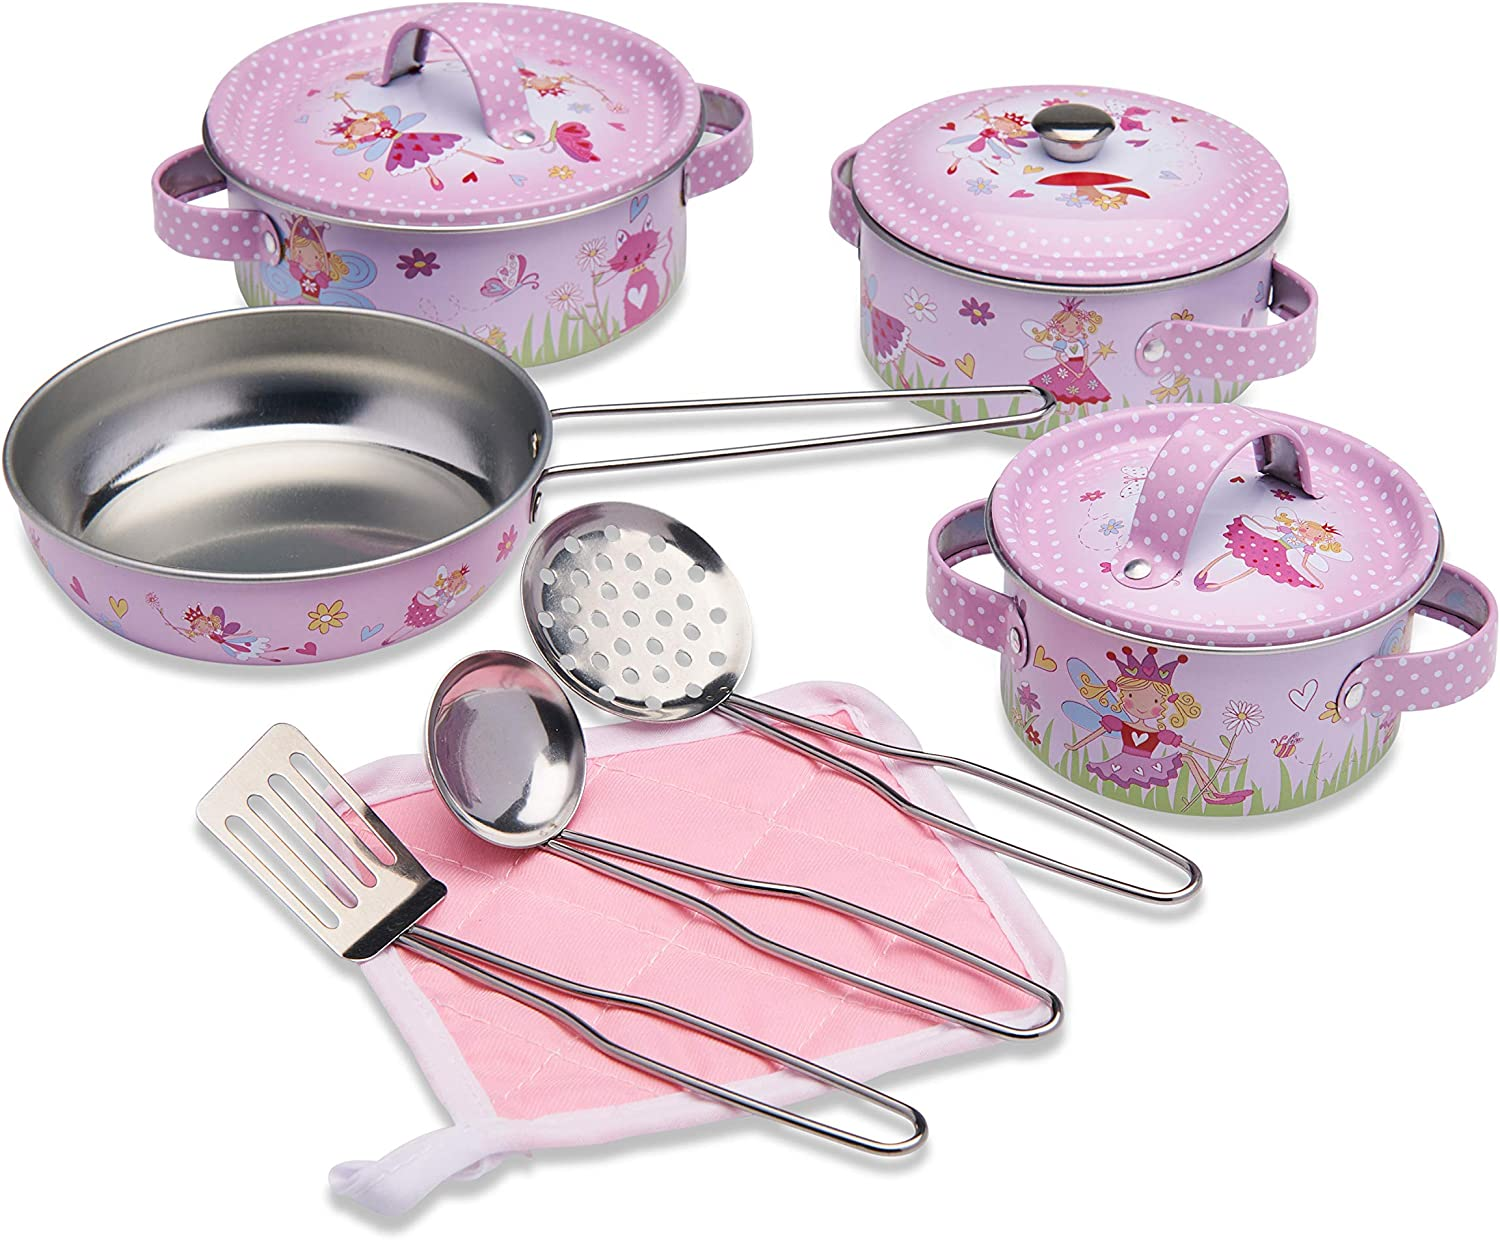 Wobbly Jelly - 'Fairy Tale' Kids Kitchen Set - 11 pc Toy Pots and Pans Set for Kids - Toy Kitchen Accessories